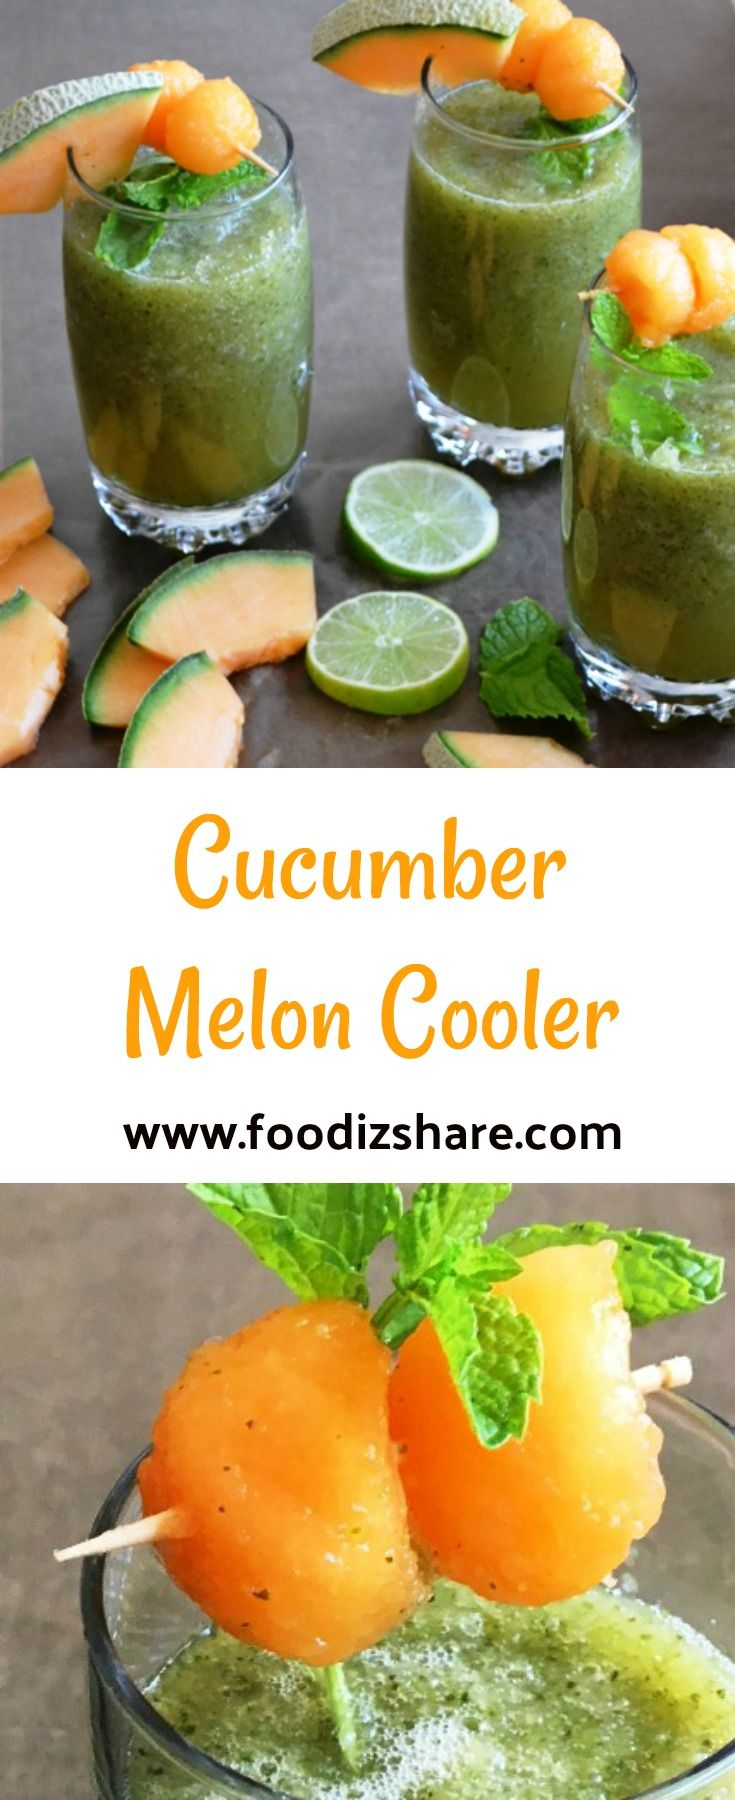 A refreshing, healthy drink made with cucumbers, cantaloupe melon, mint, lime juice. #recipes #easyrecipe #healthy